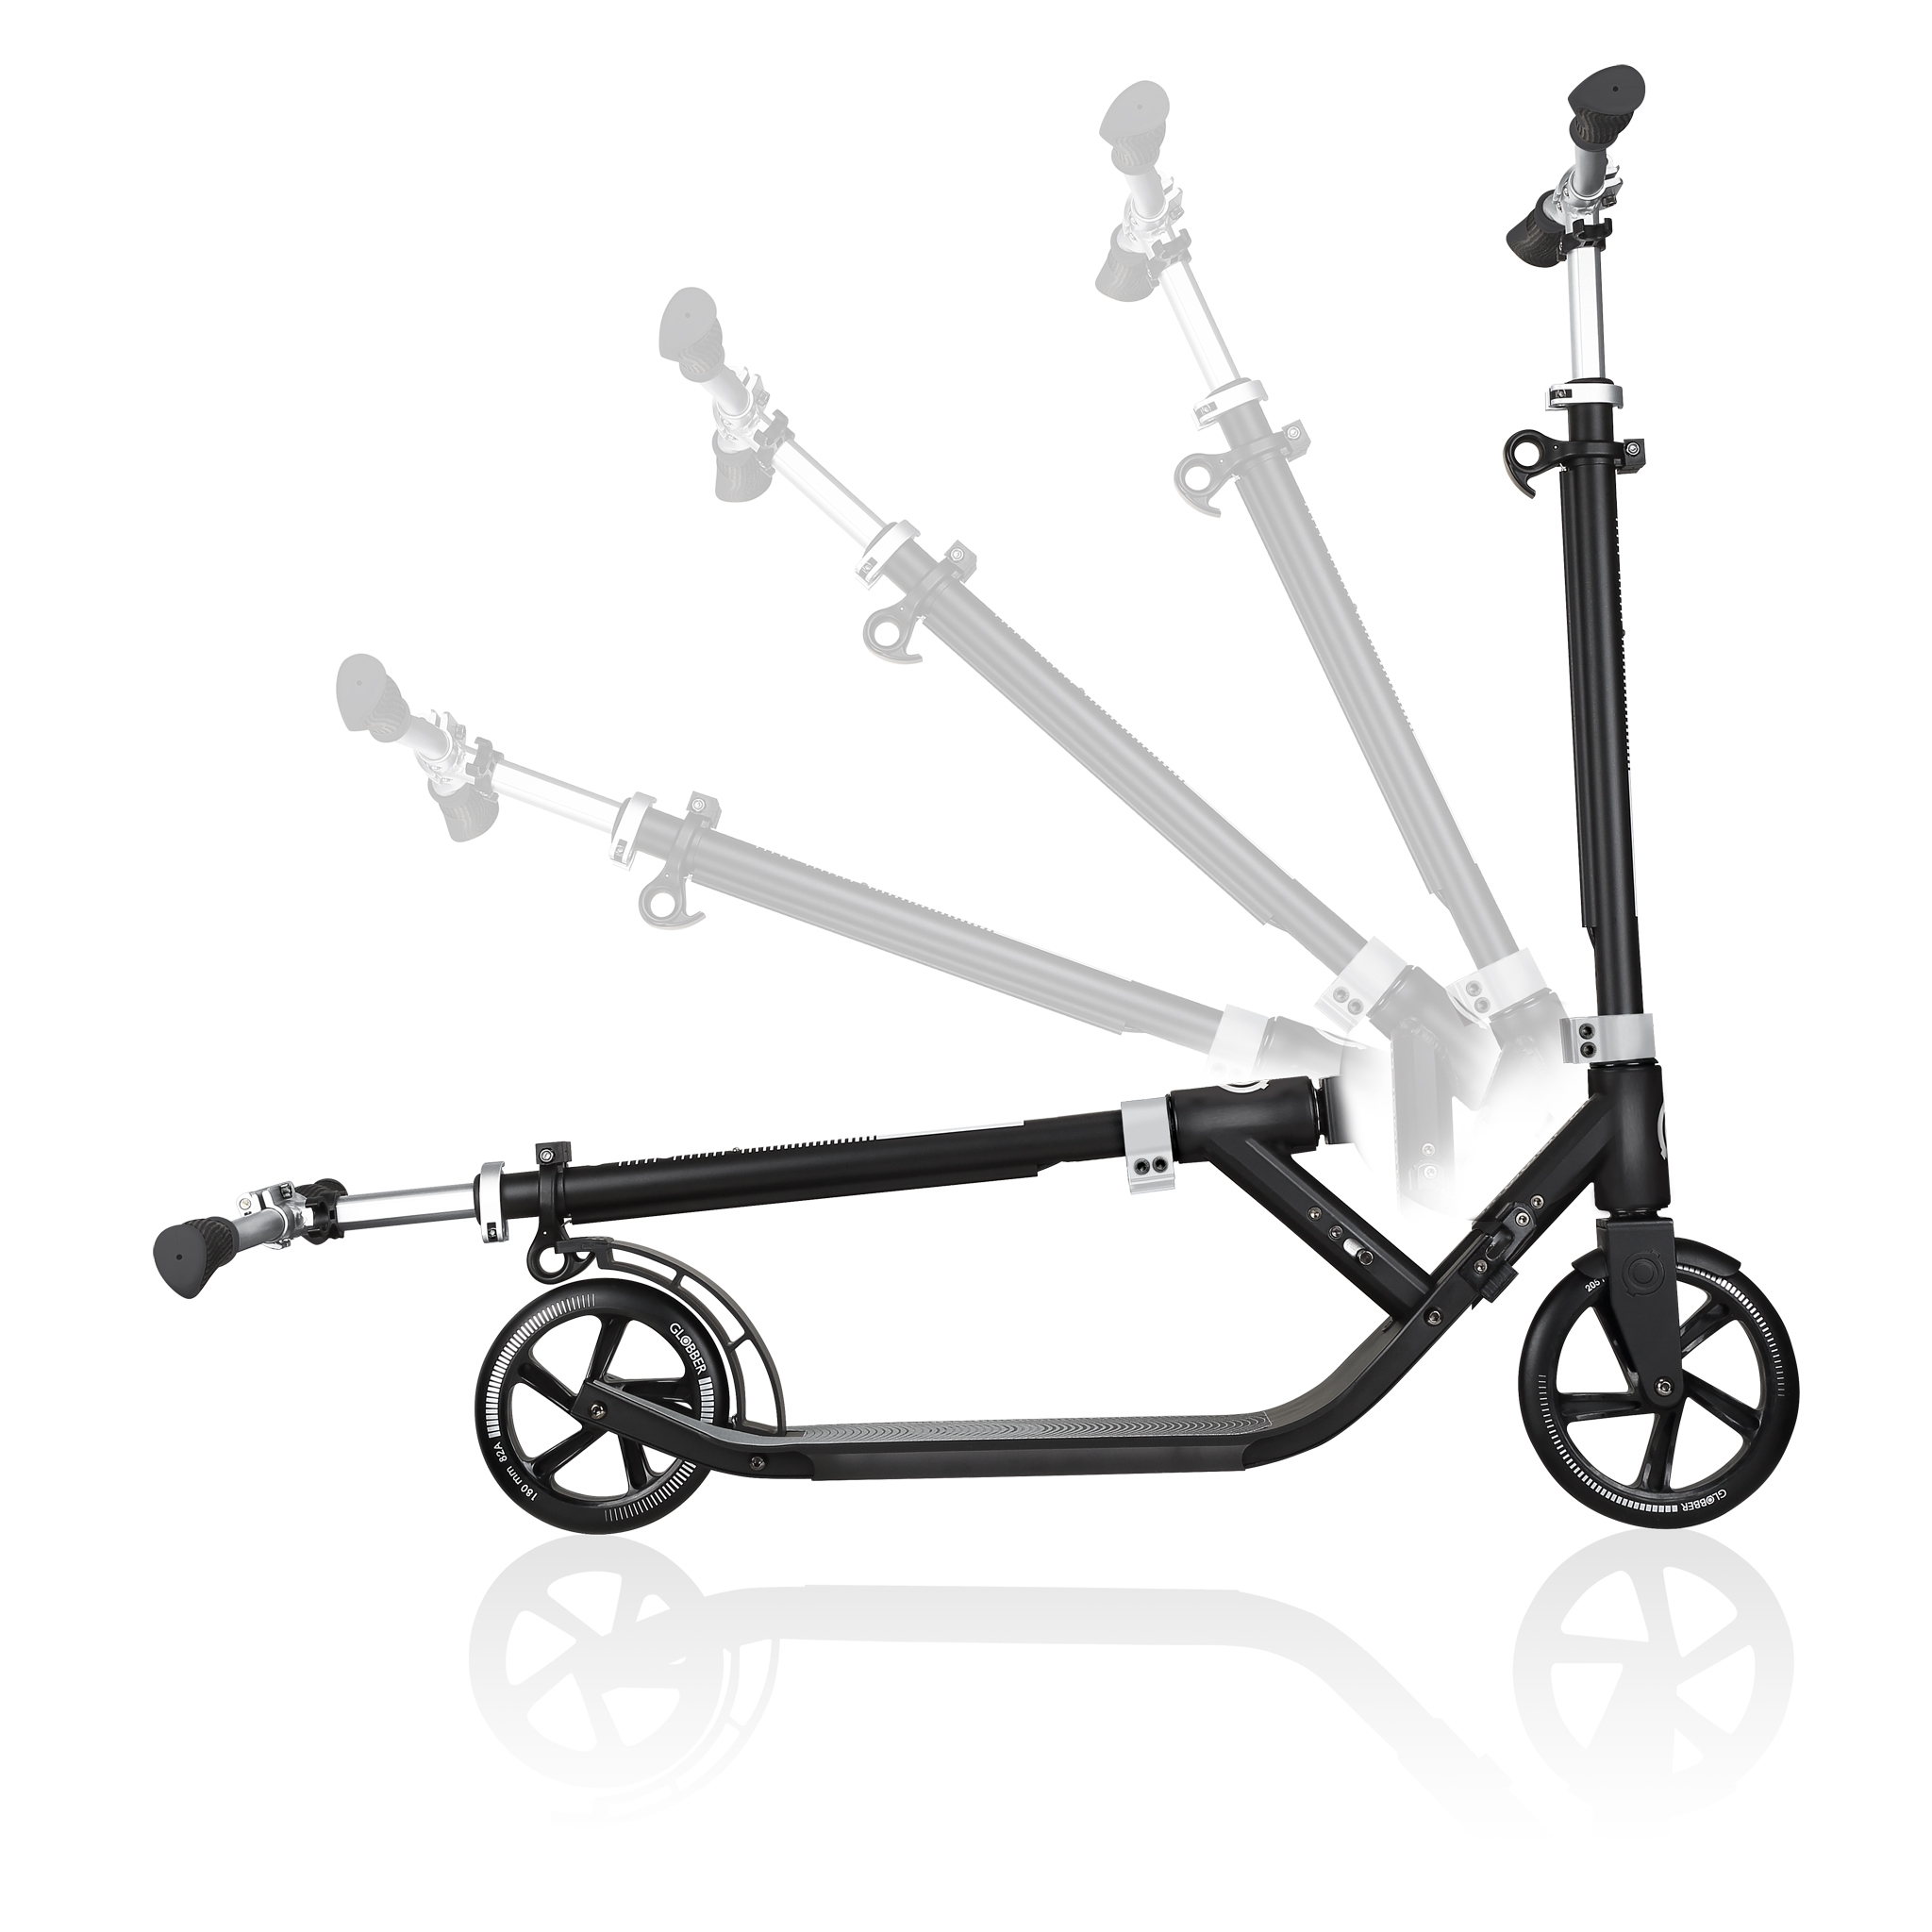 Globber-ONE-NL-205-180-DUO-2-wheel-foldable-scooter-for-adults-1-second-fold-up-scooter-lead-grey 2